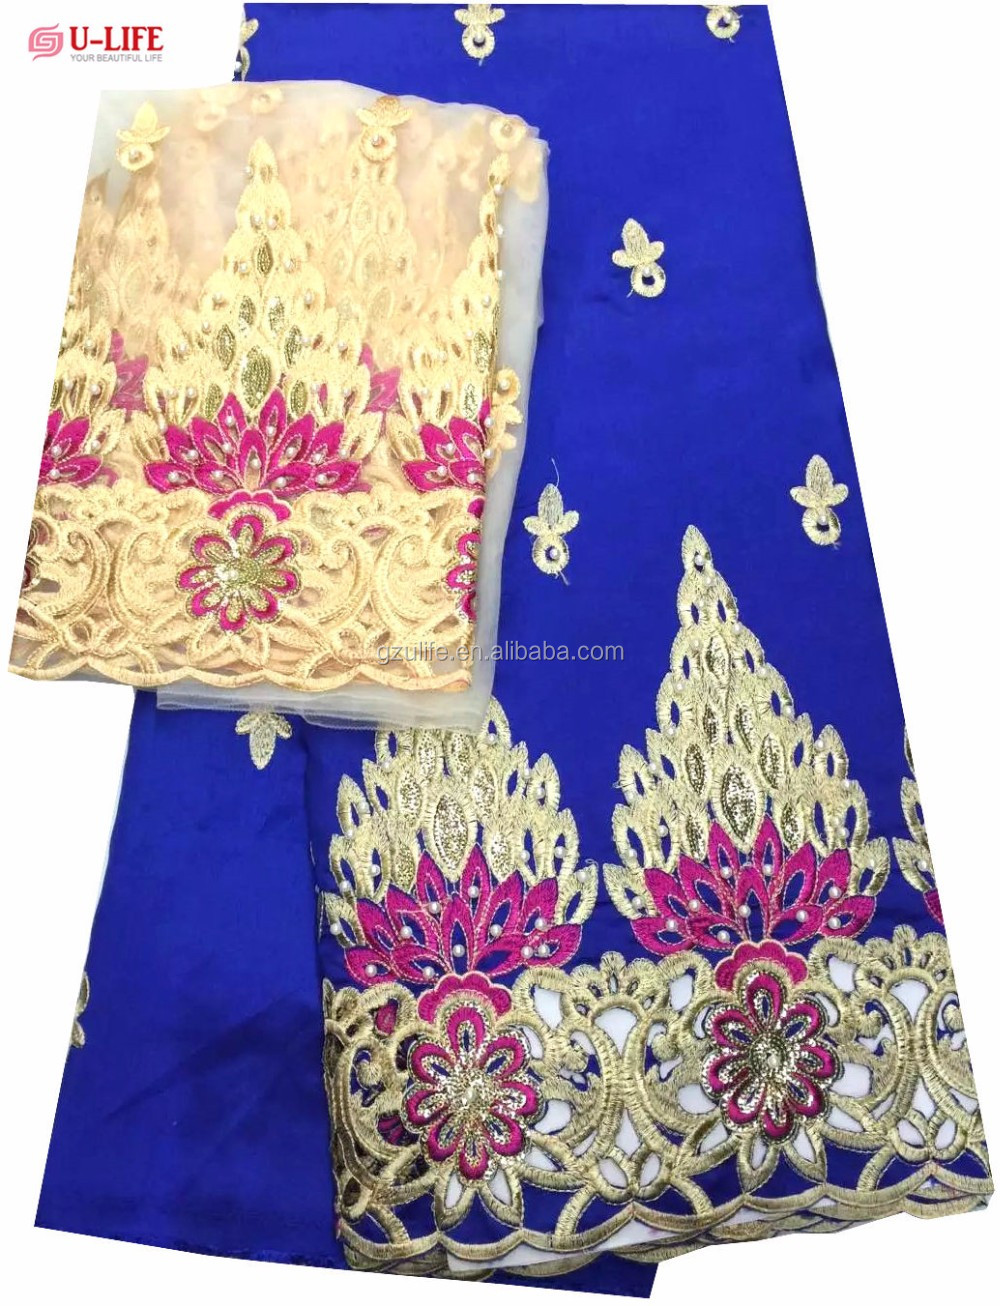 High Quality Royal Blue Beaded Embroidery India George Wrappers with Blouse for Nigeria PartyG1078)